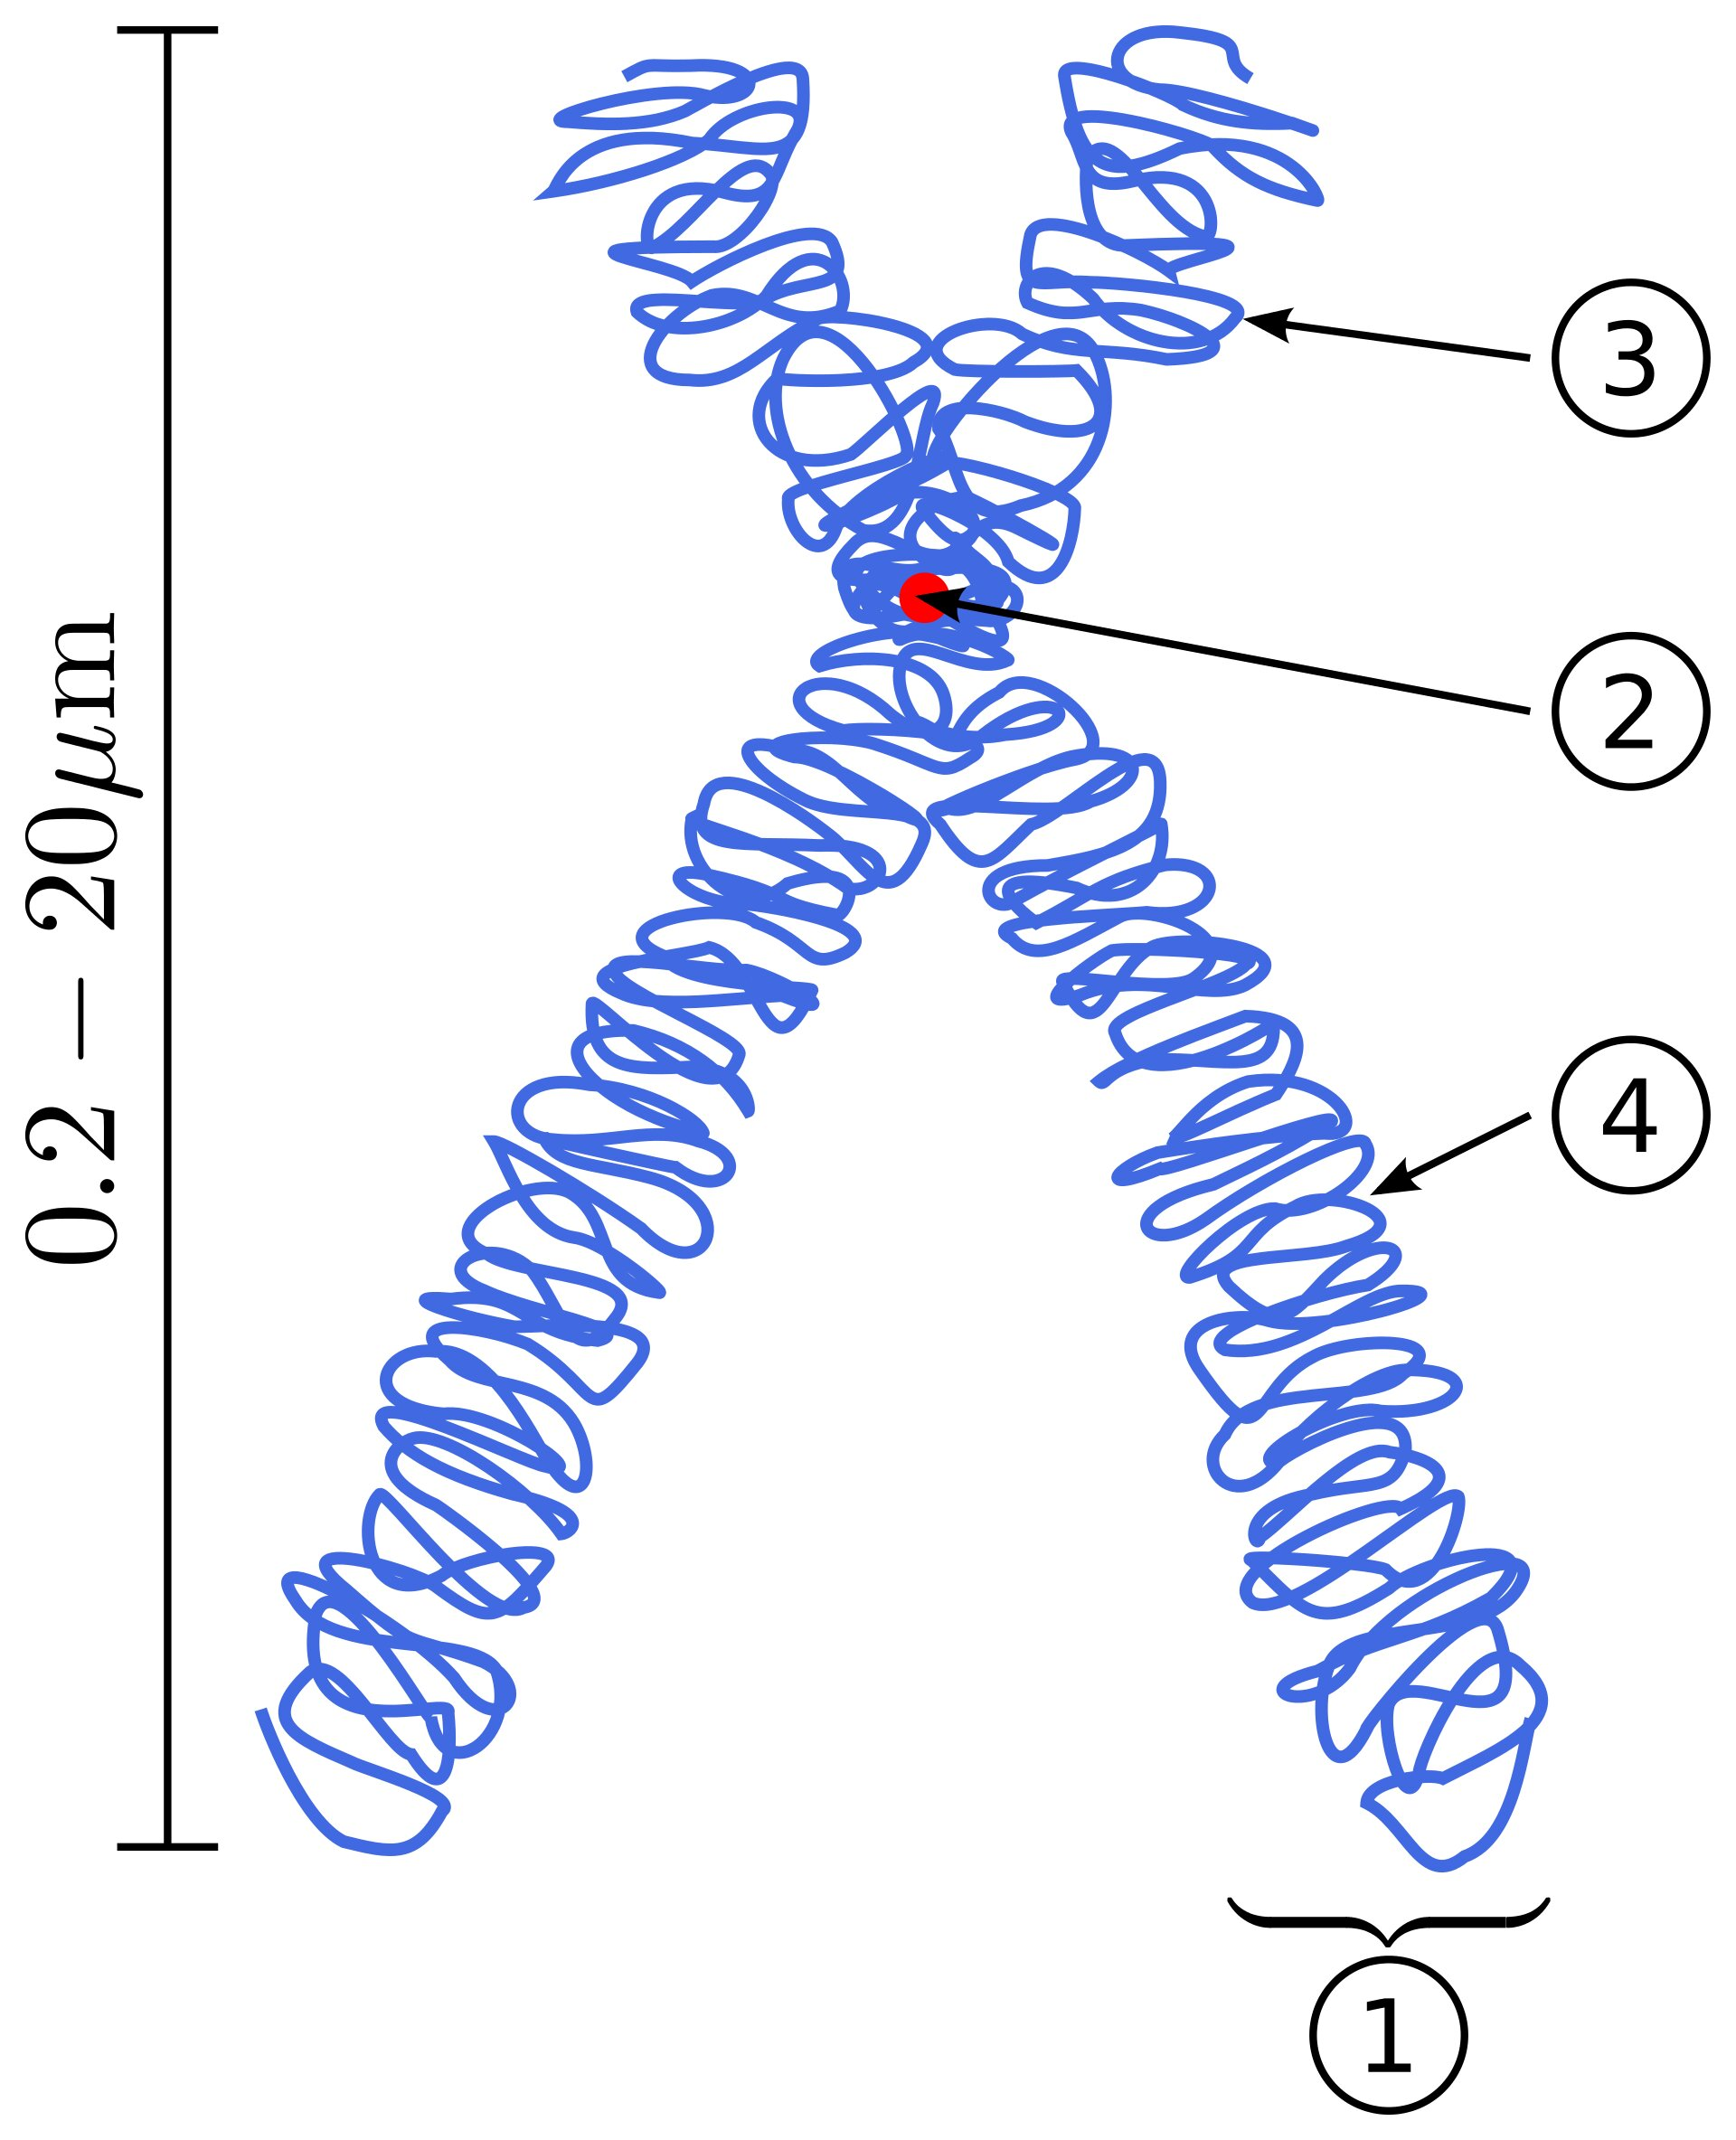 3-D creature construction: Building chromosomes from the ground up